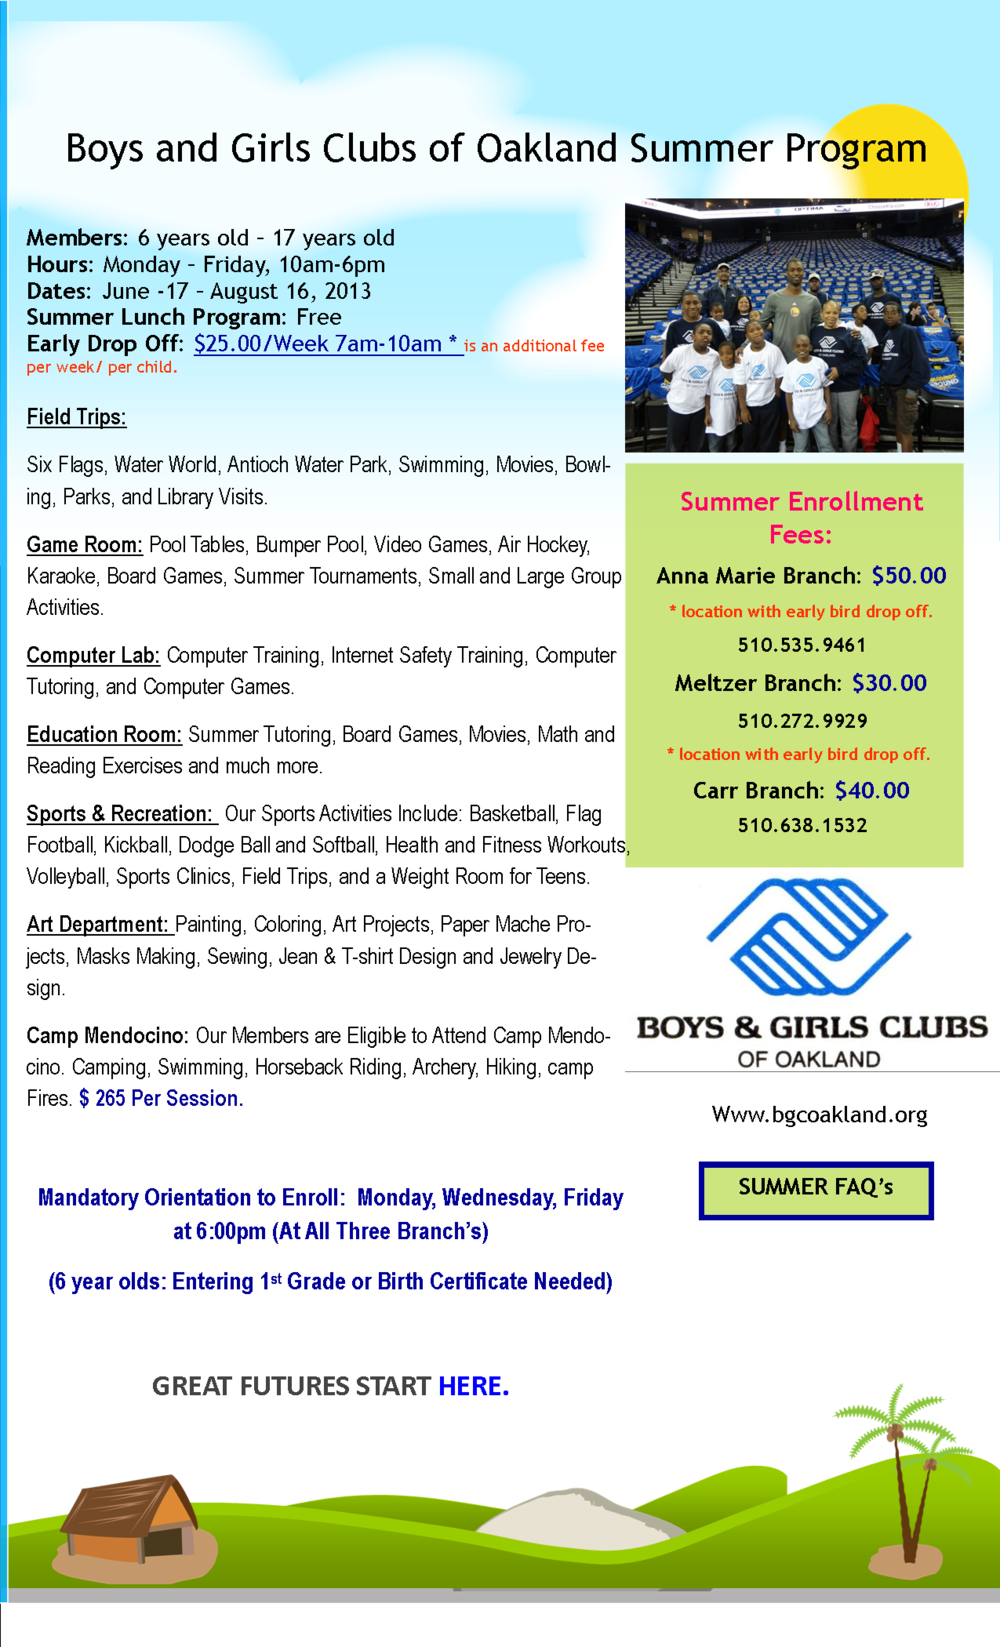 BGCO Summer Program June 14 2013.png